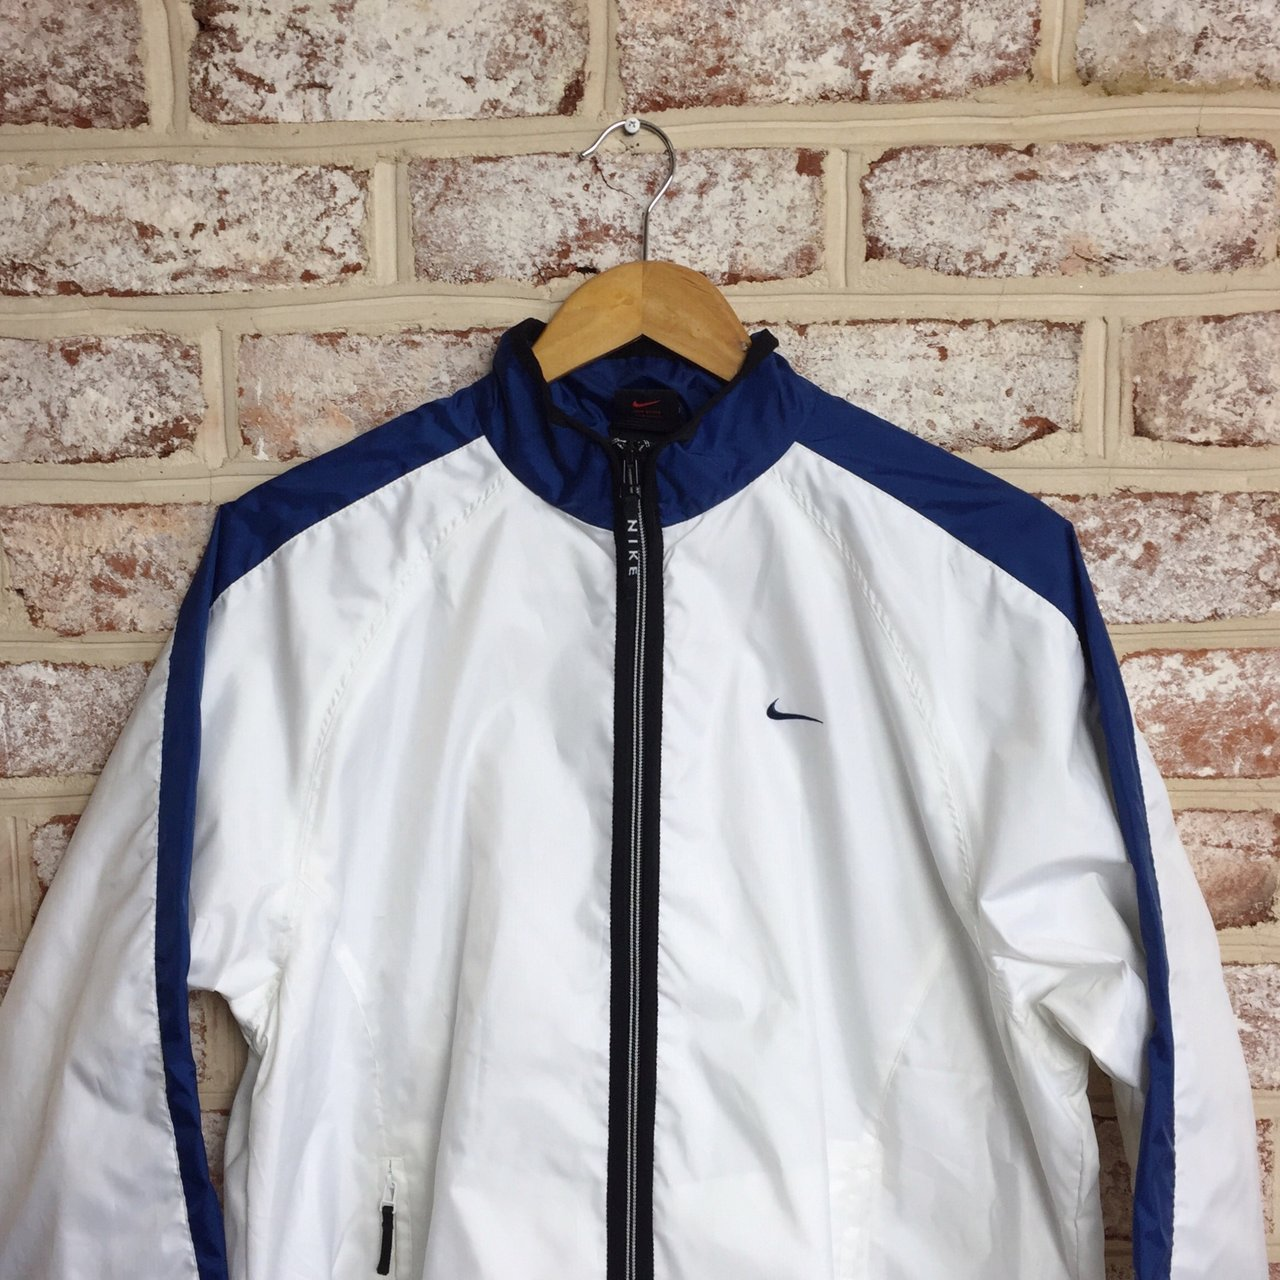 Older Nike Windbreaker jacket. In good condition a7bab3973